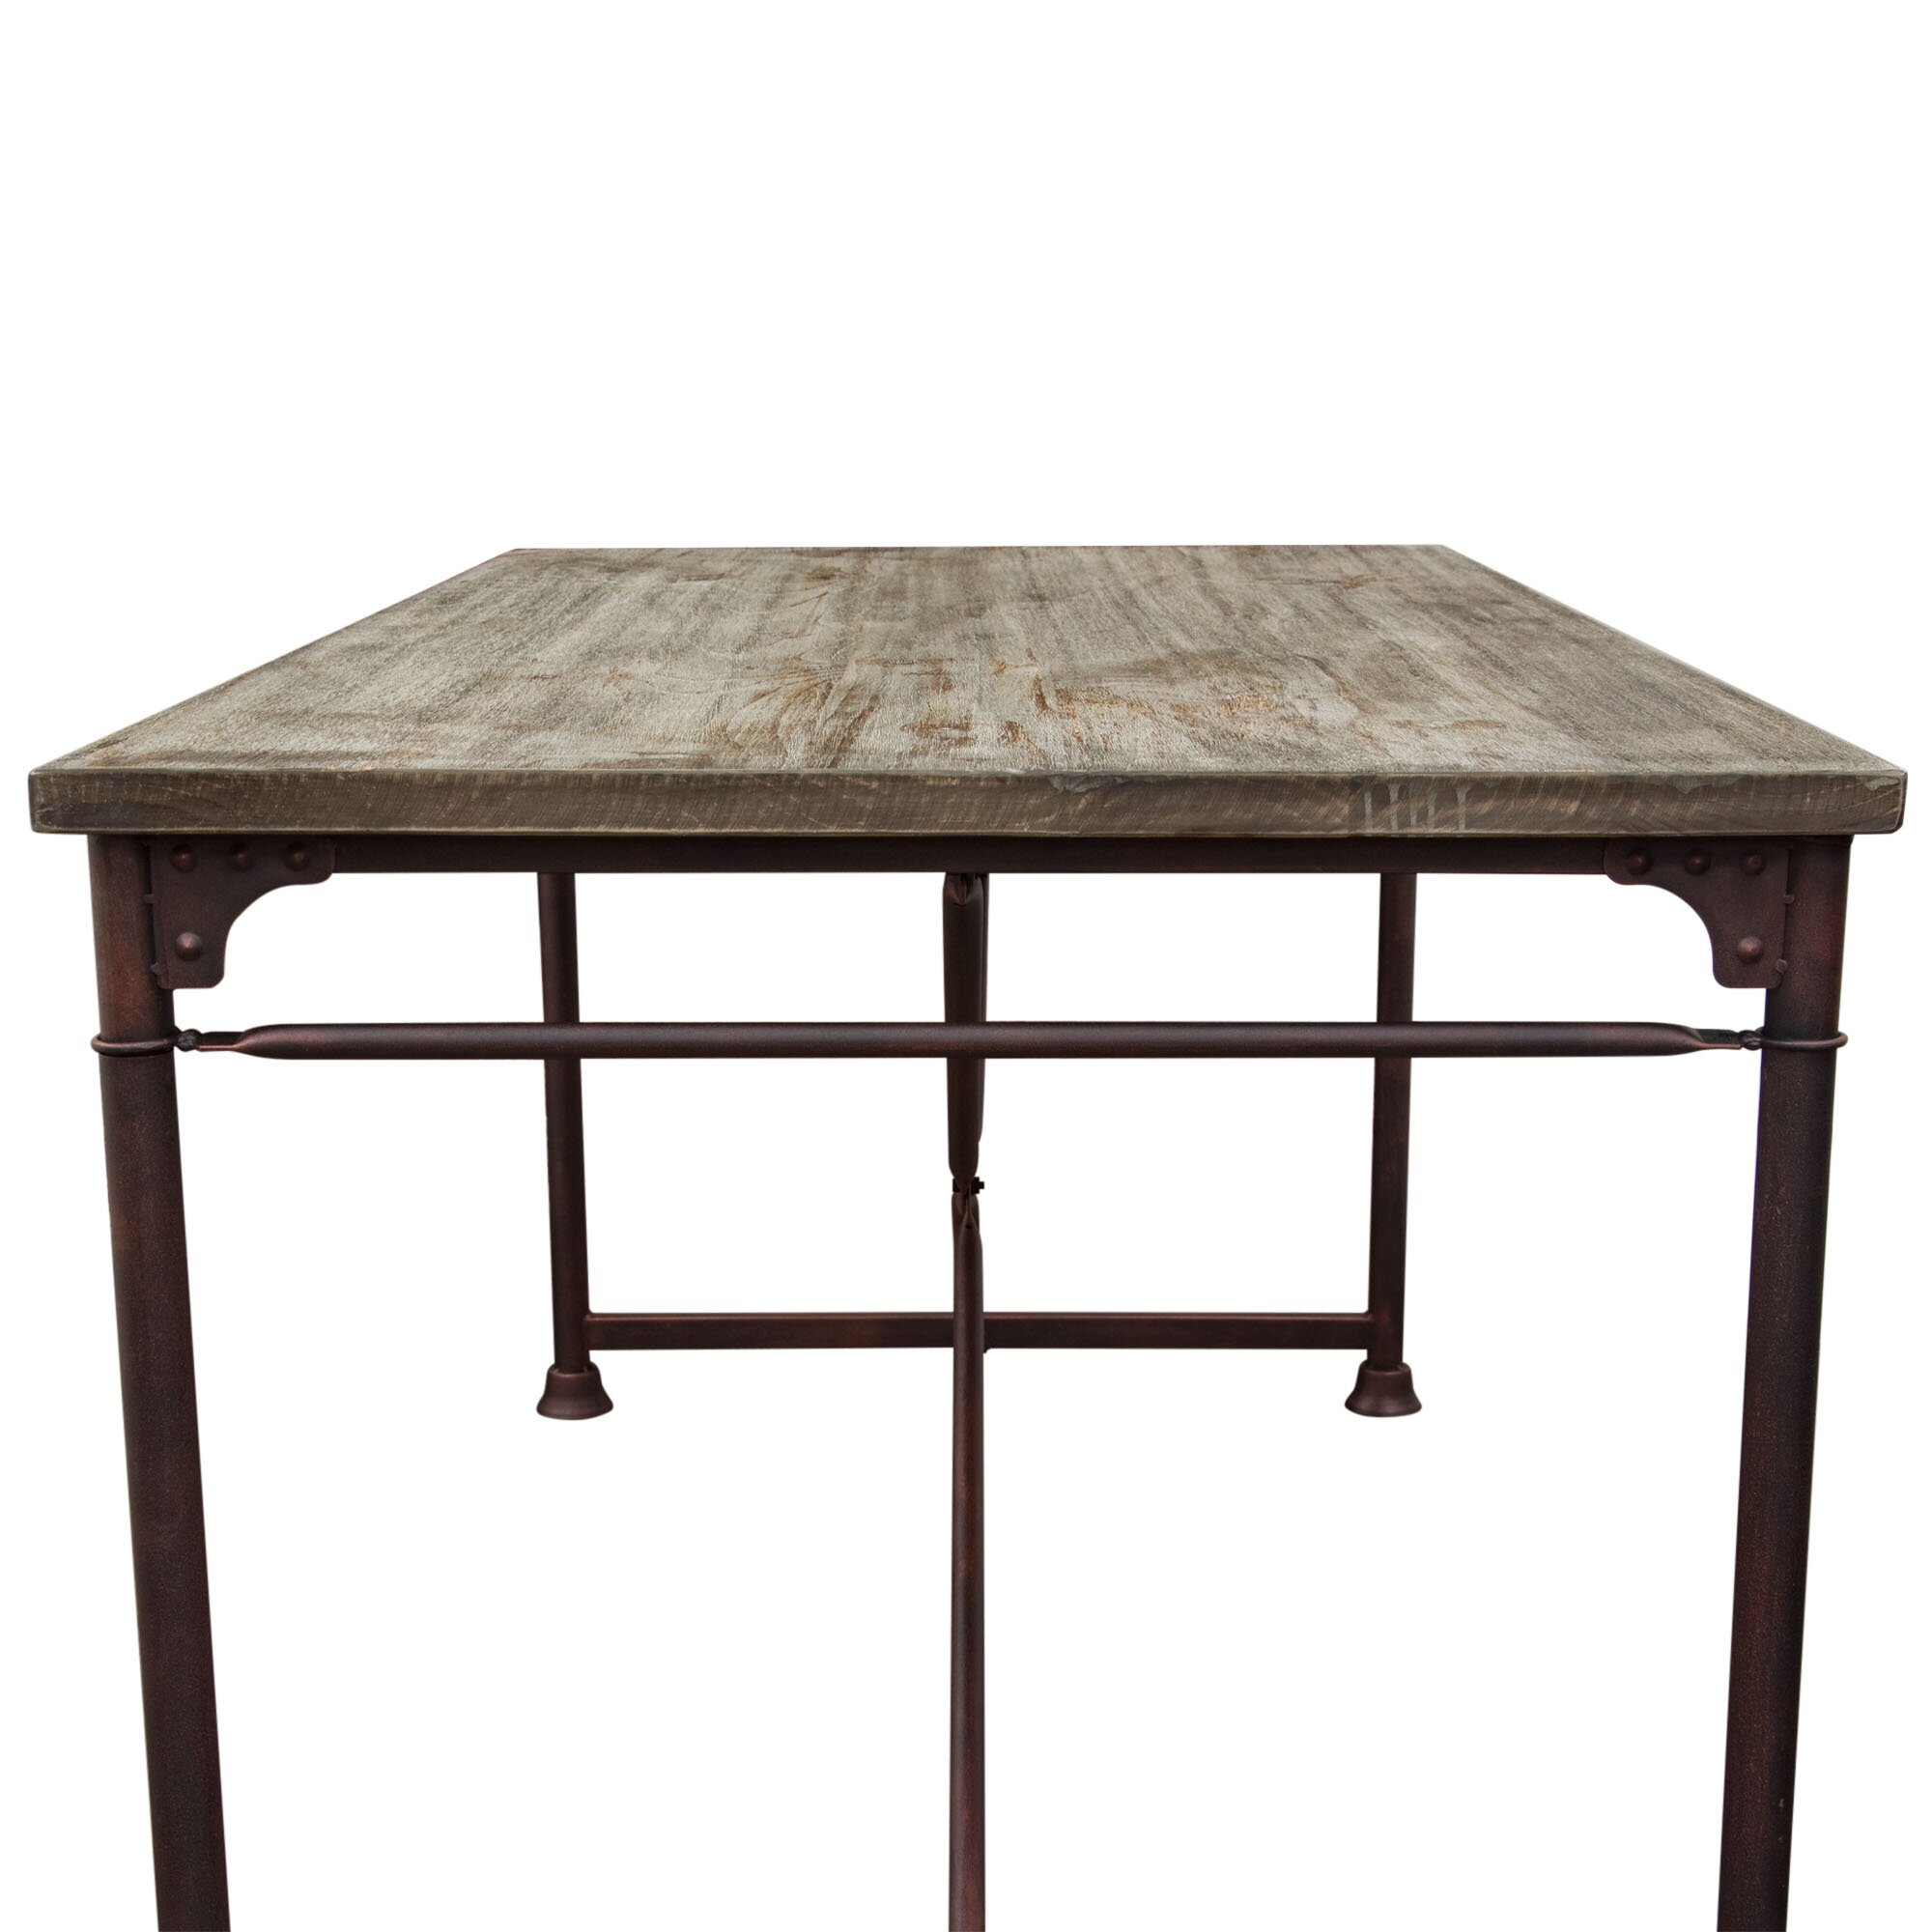 Diamond Sofa Dixon Dining Table amp Reviews Wayfair : Dixon Vintage Rectangular Dining Table with Weathered Grey Top and Rust Black Hand Painted Distressed Base by Diamond Sofa DIXONDTBL from www.wayfair.com size 2000 x 2000 jpeg 244kB